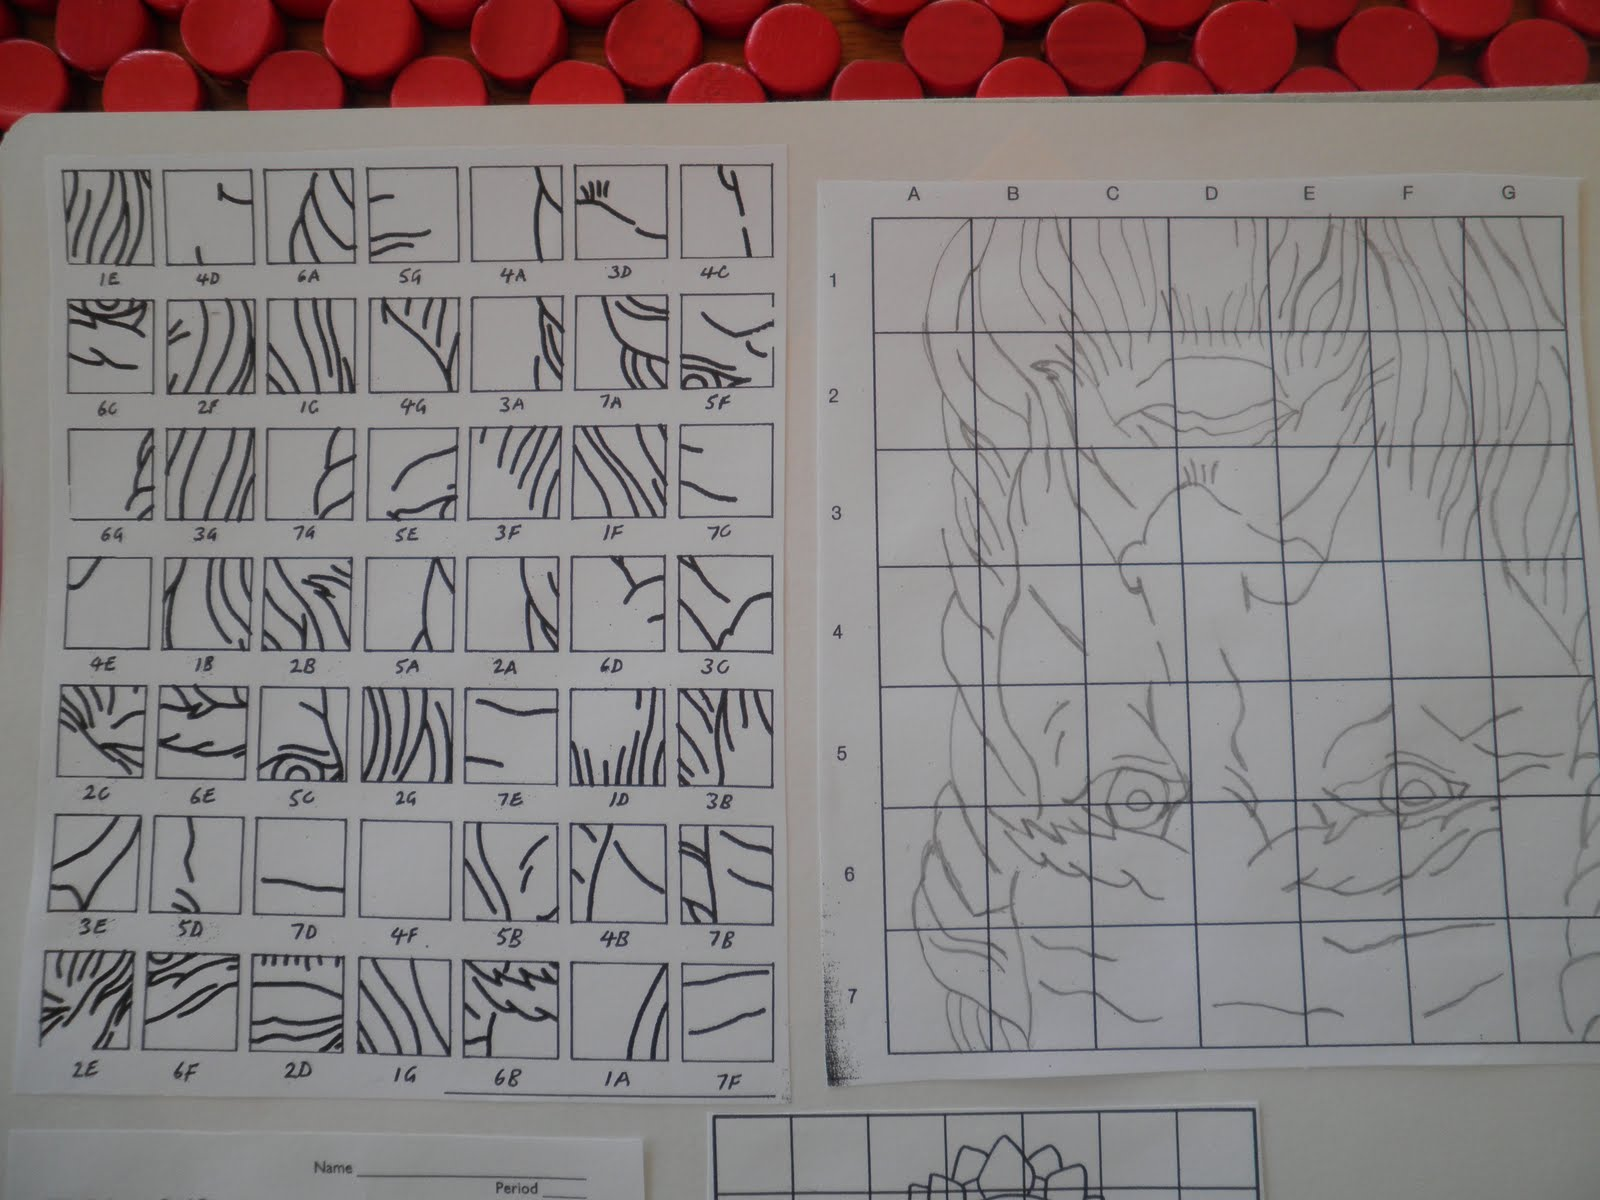 This is an image of Universal Mystery Grid Drawing